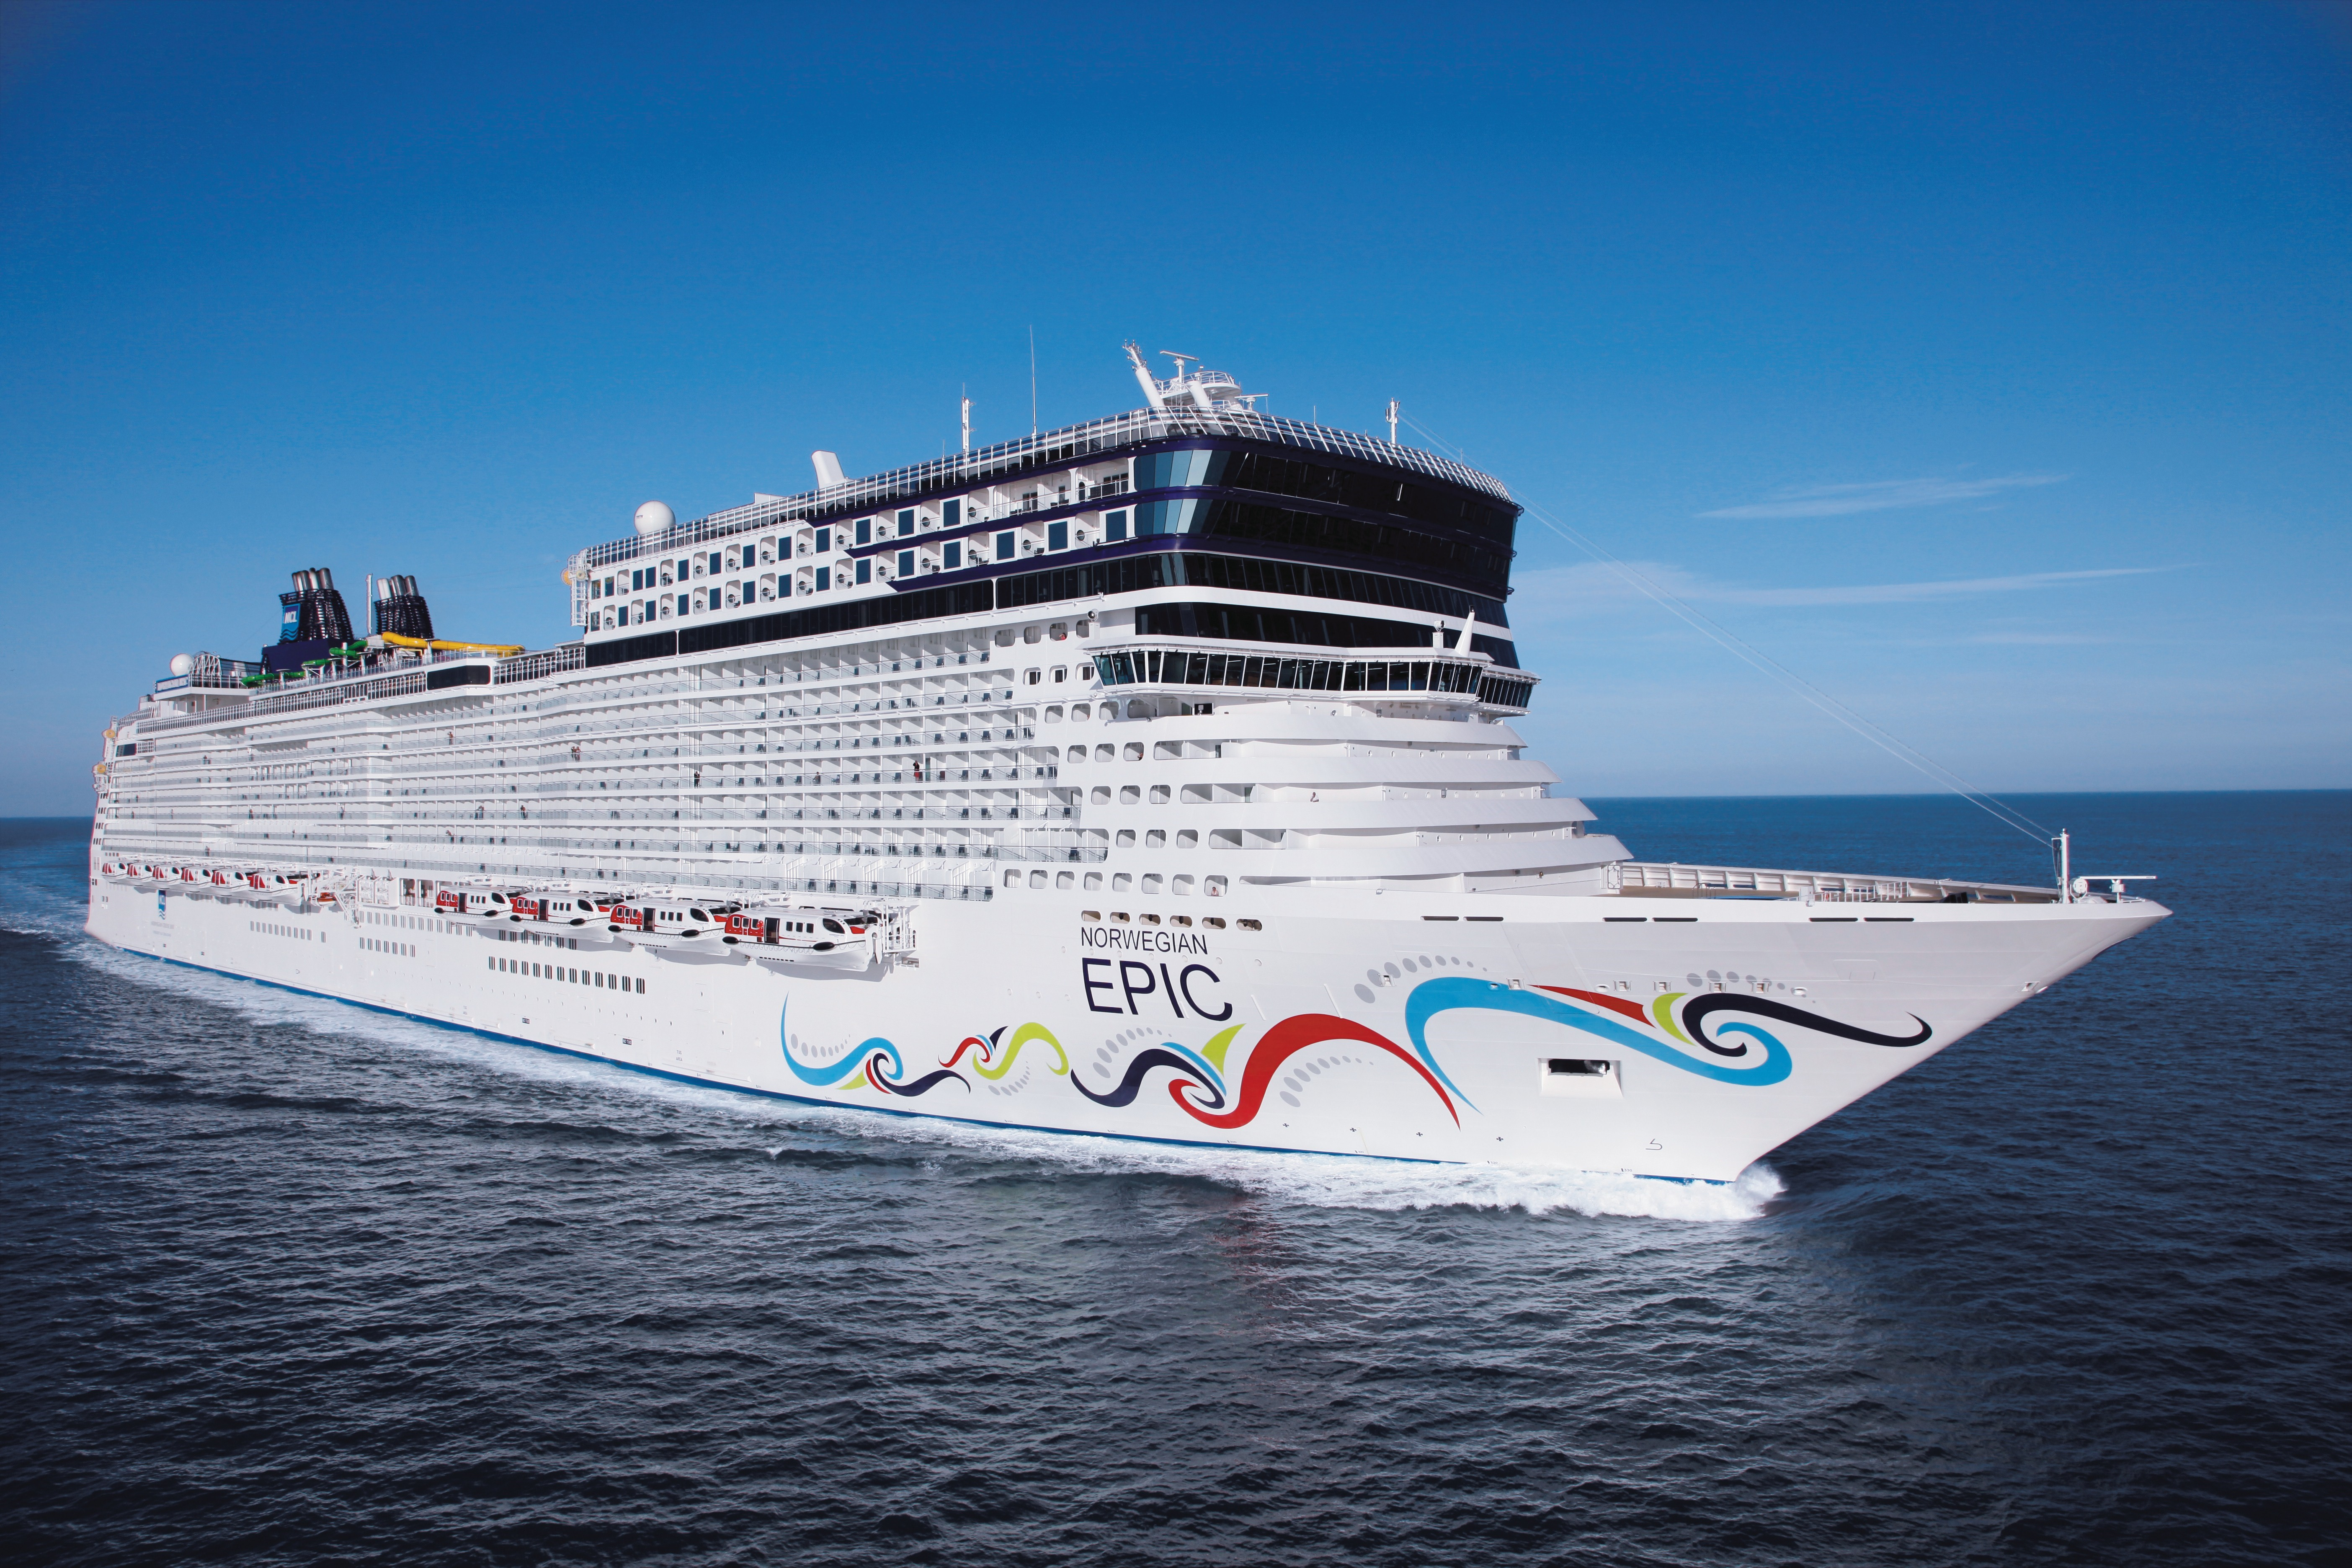 תמונה של NORWEGIAN EPIC נורווג'יאן אפיק